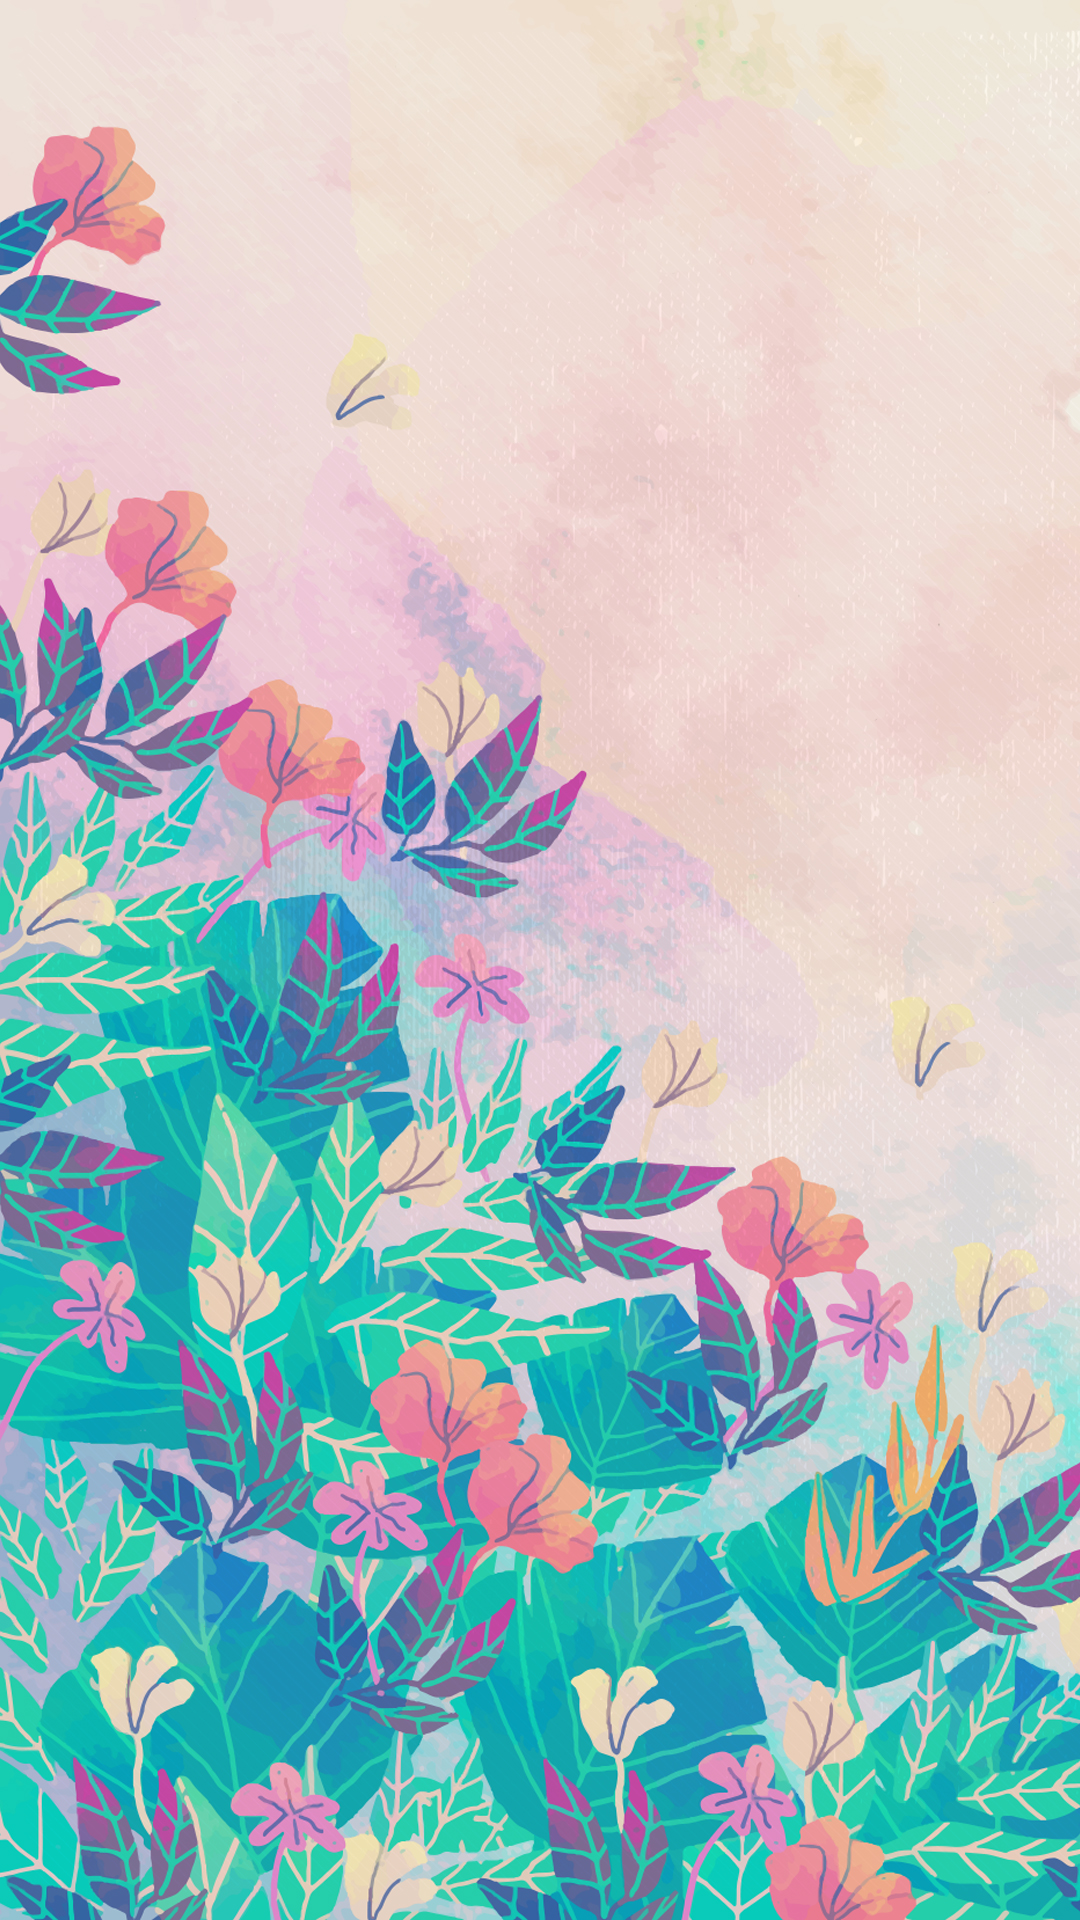 flower painting watercolor wallpaper - photo #49